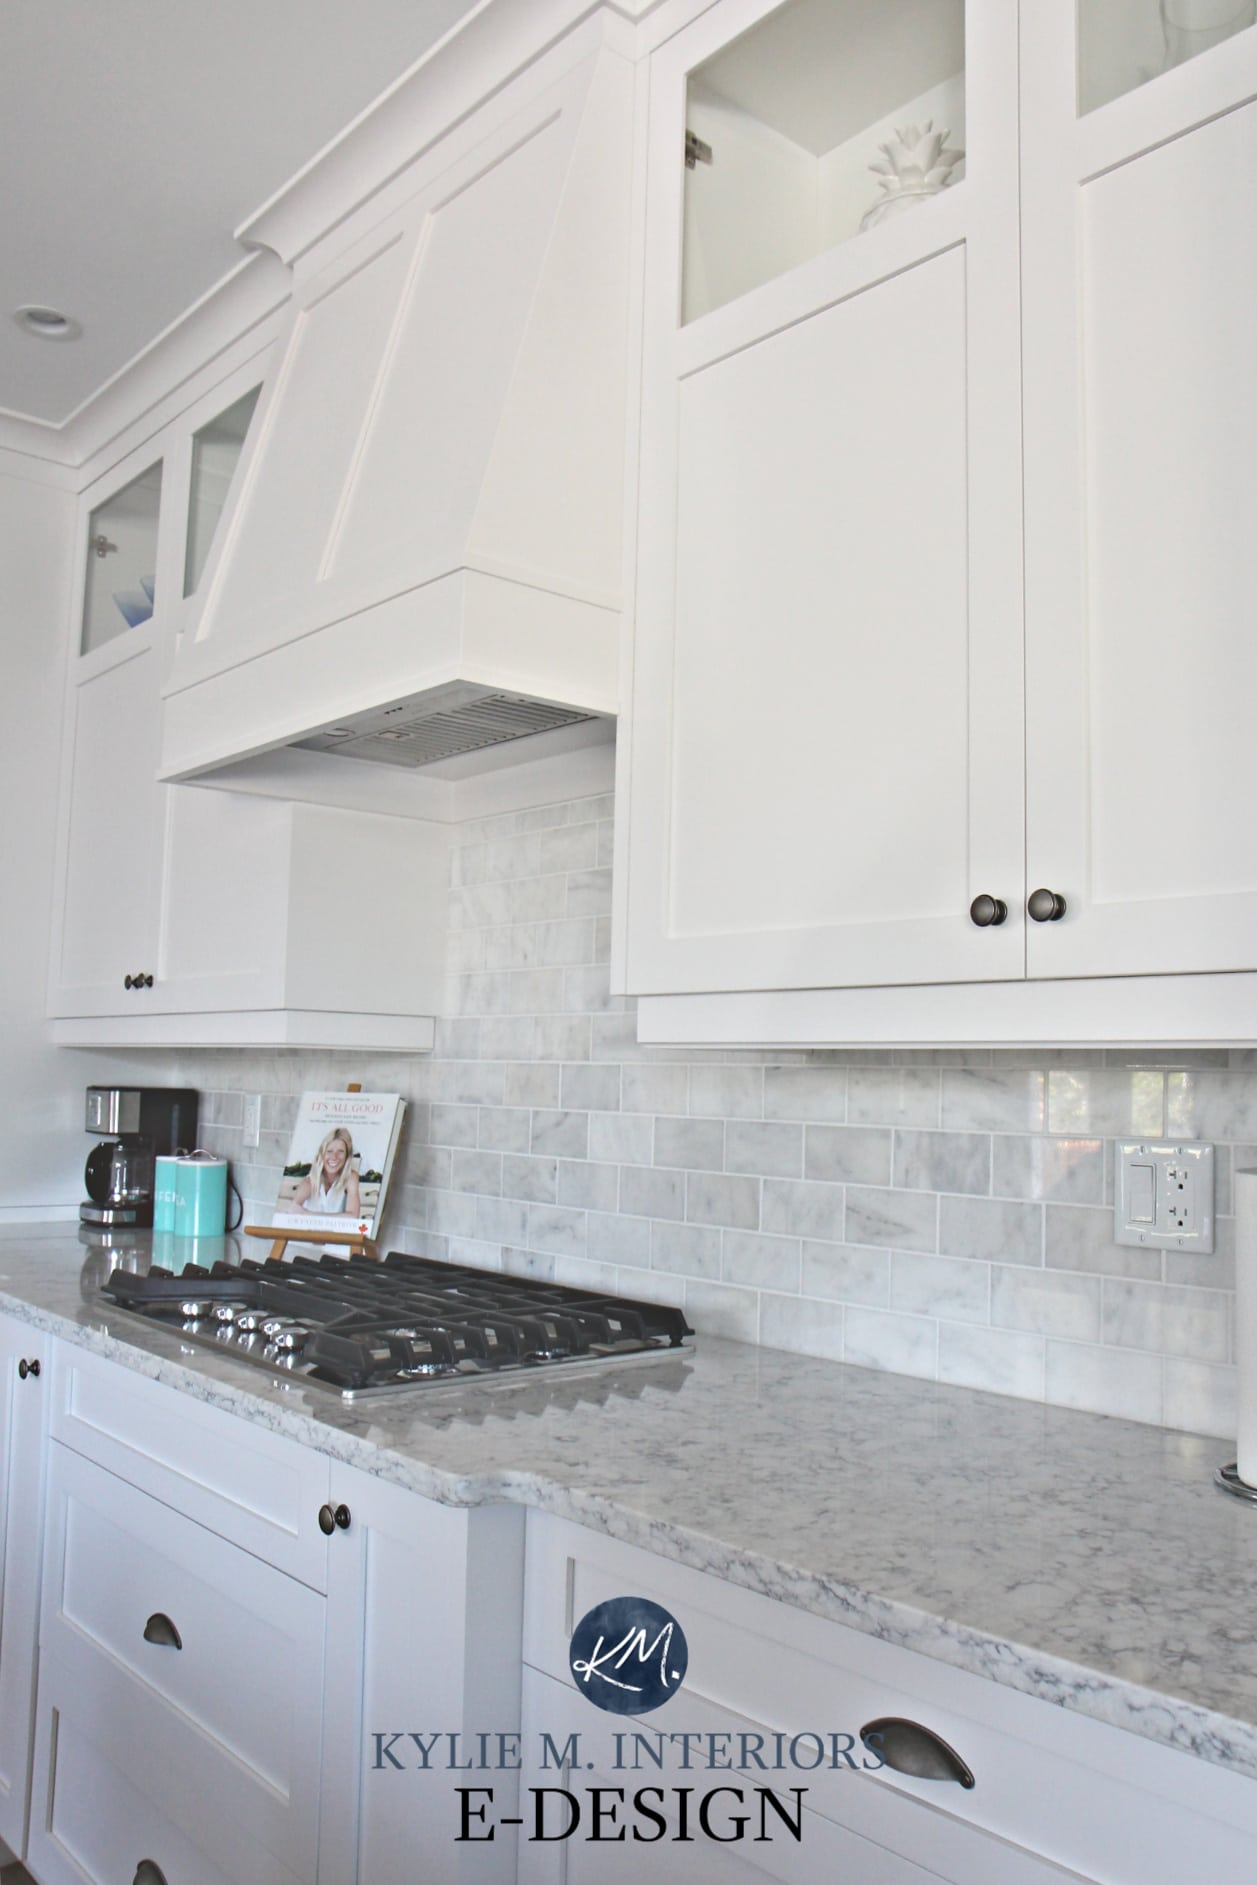 Sherwin-williams Countertop Paint The Best White For Kitchen Cabinets With Marble Sherwin Williams